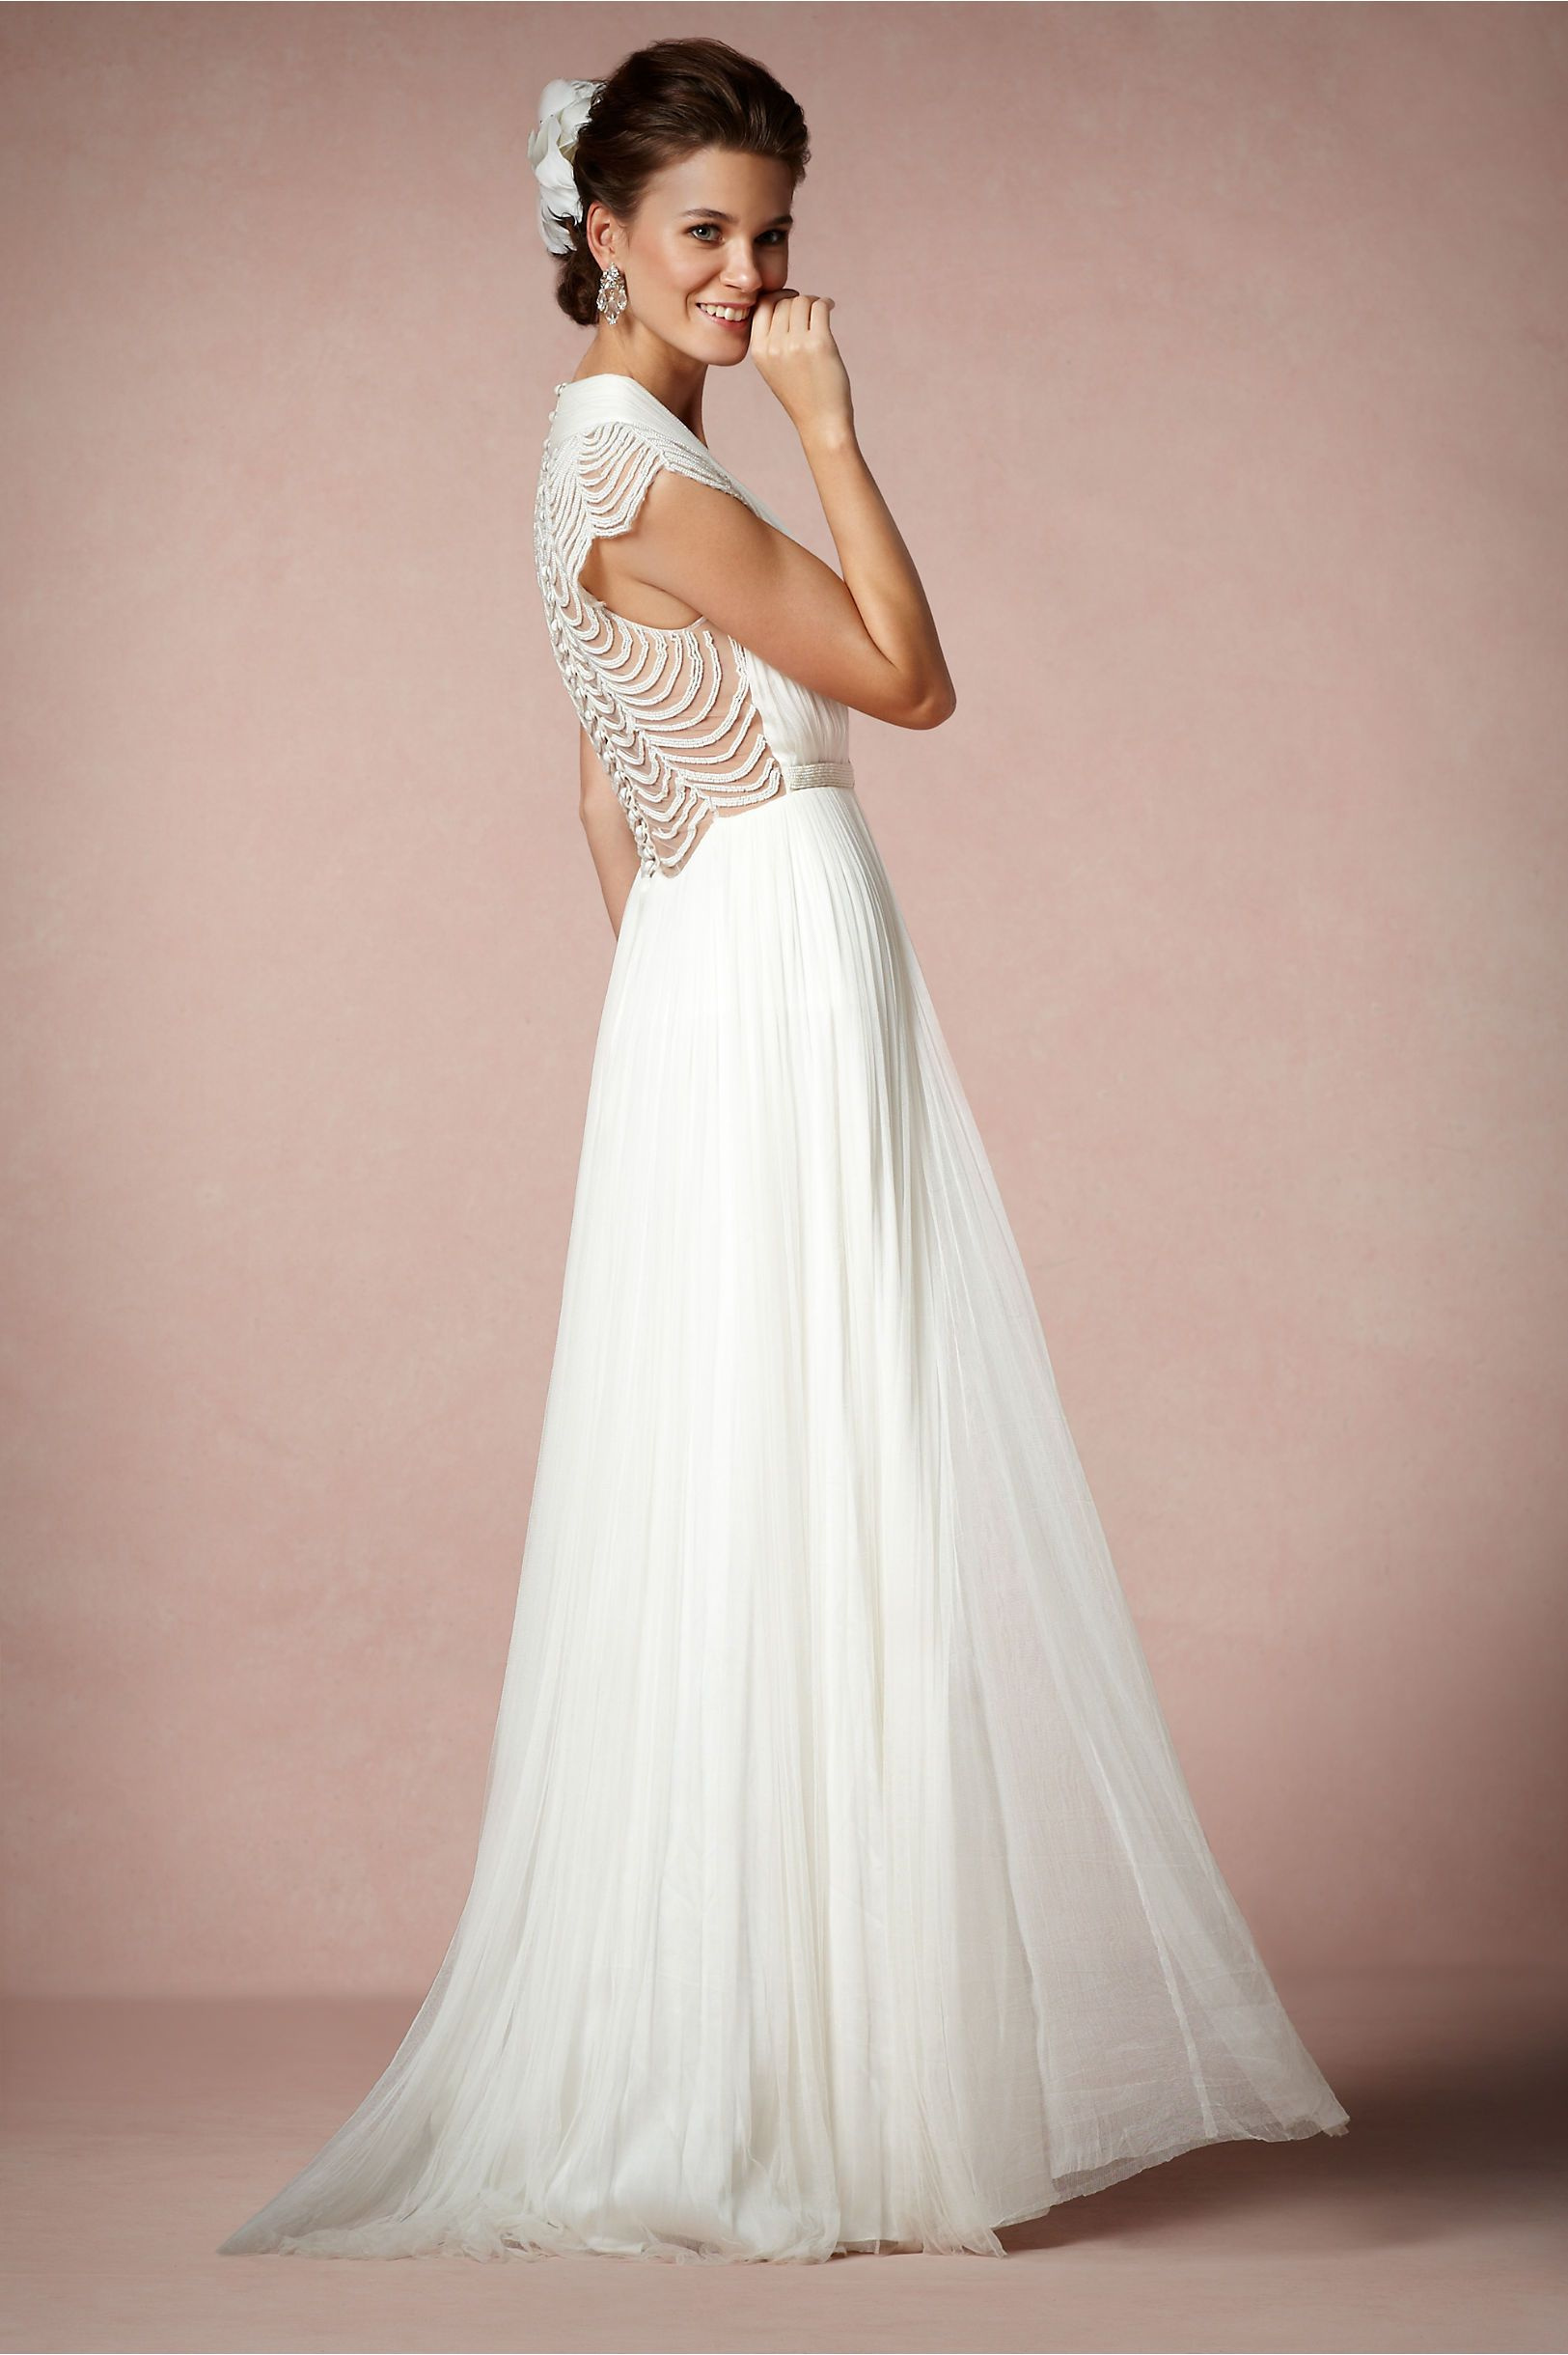 Ortensia Gown from BHLDN #catherinedeane | Look | Pinterest ...